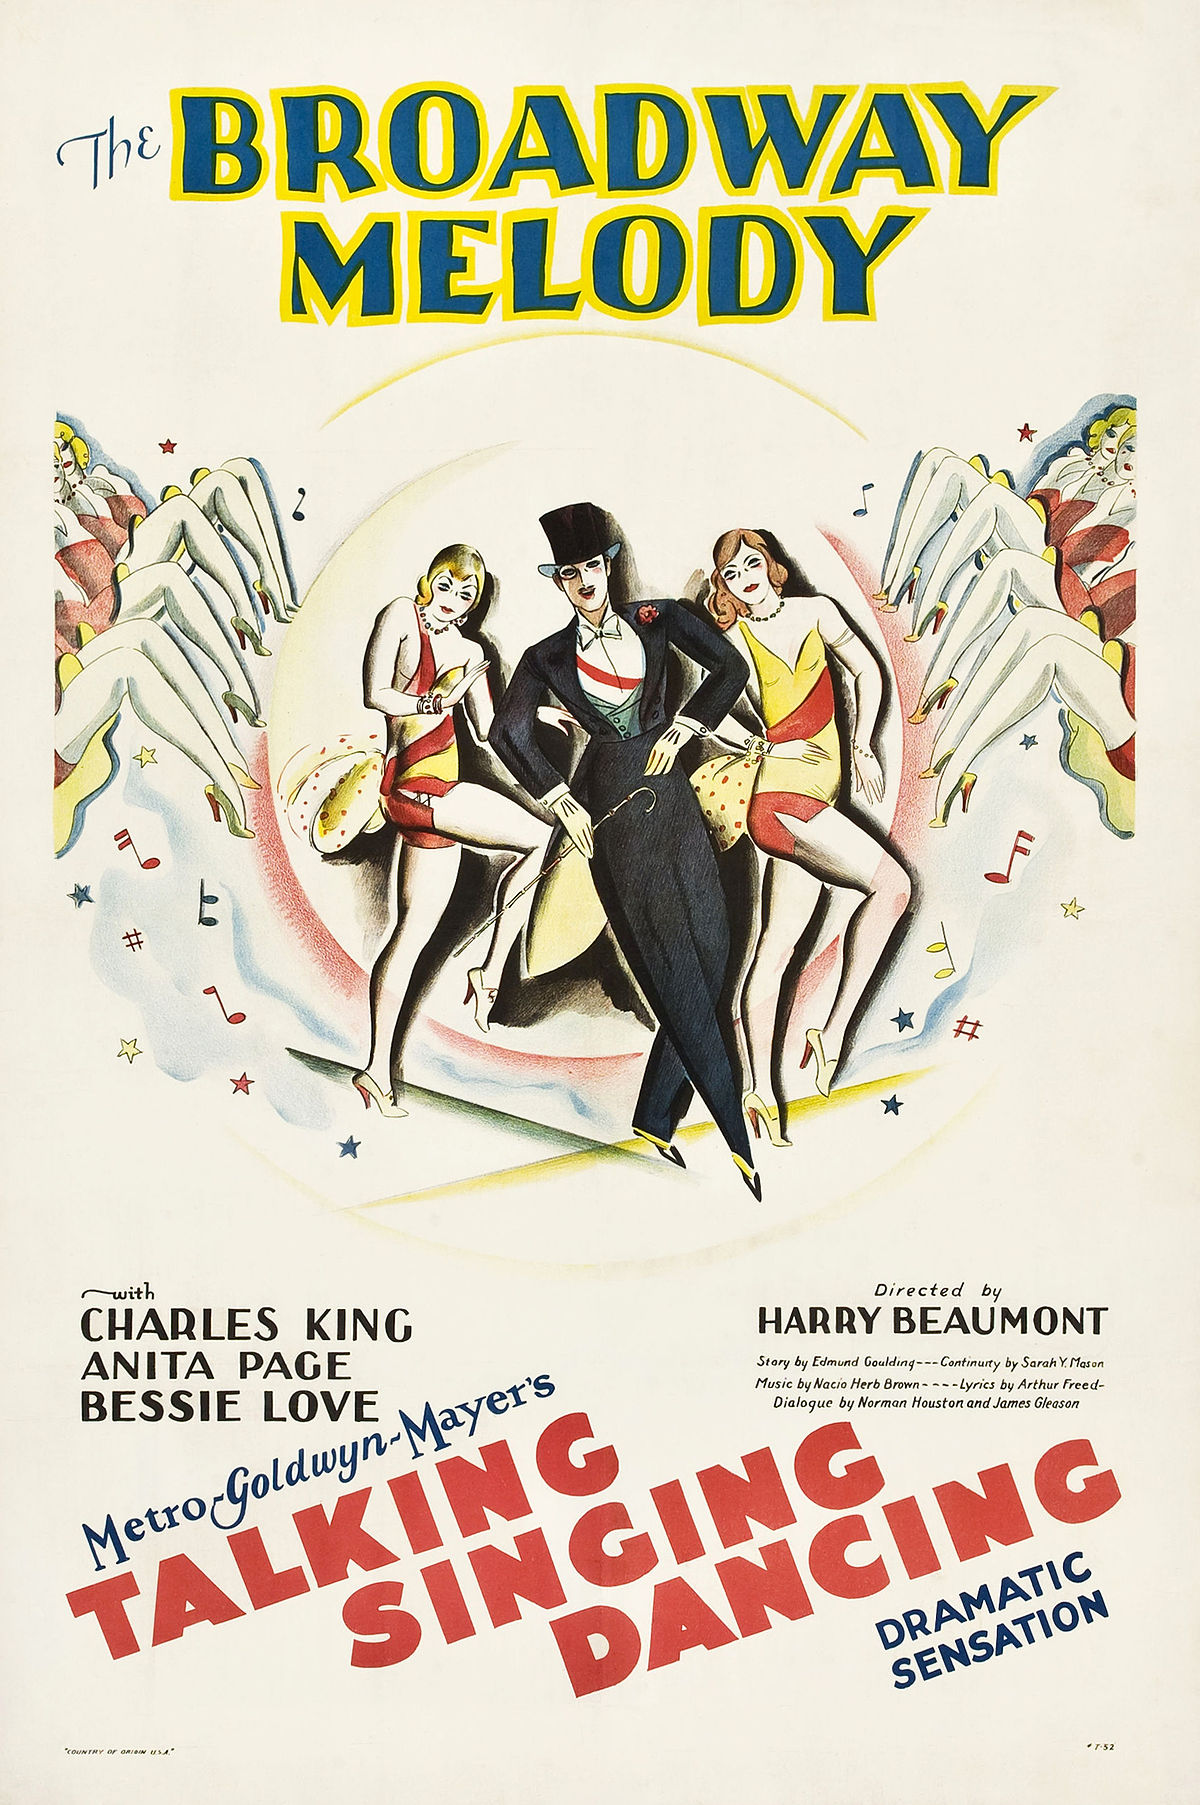 https://upload.wikimedia.org/wikipedia/commons/thumb/f/f0/Broadway_Melody_poster.jpg/1200px-Broadway_Melody_poster.jpg